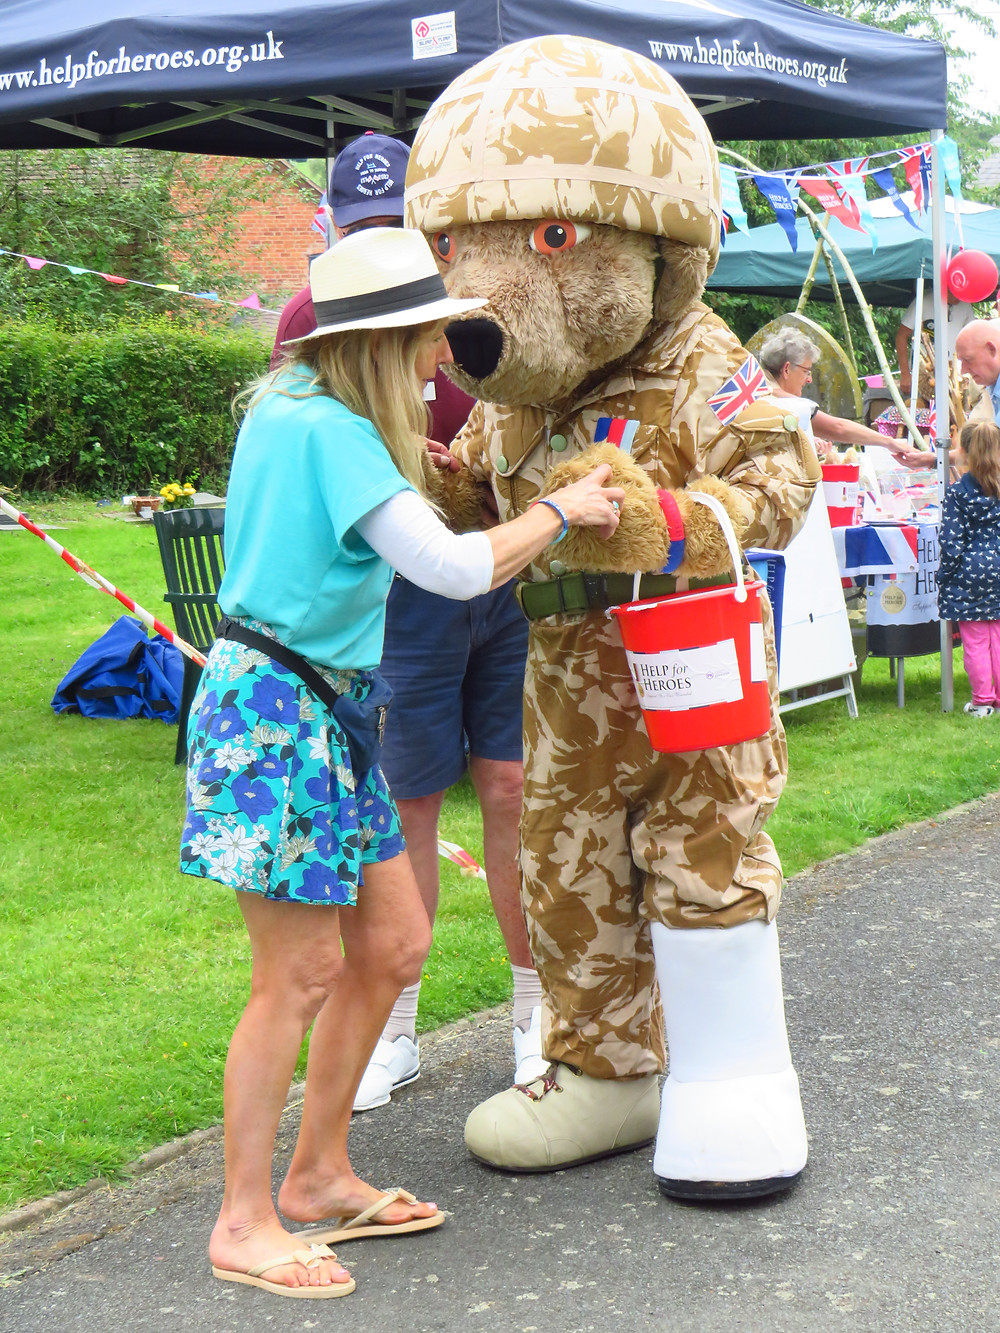 Help for Heroes bear